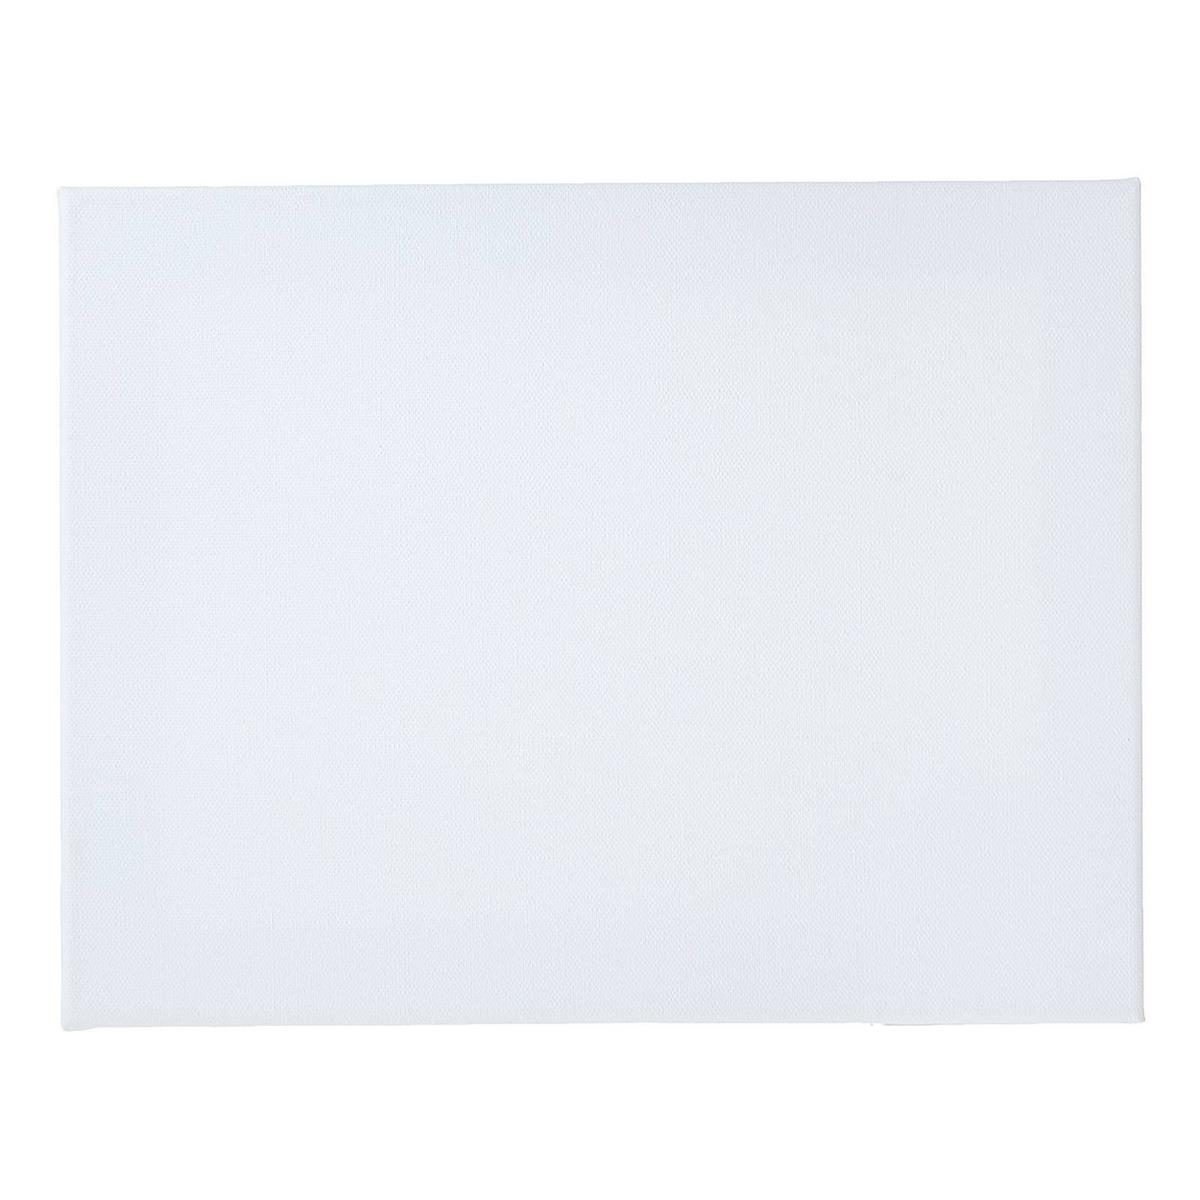 Stretched Canvas Board (12X24 Inch)